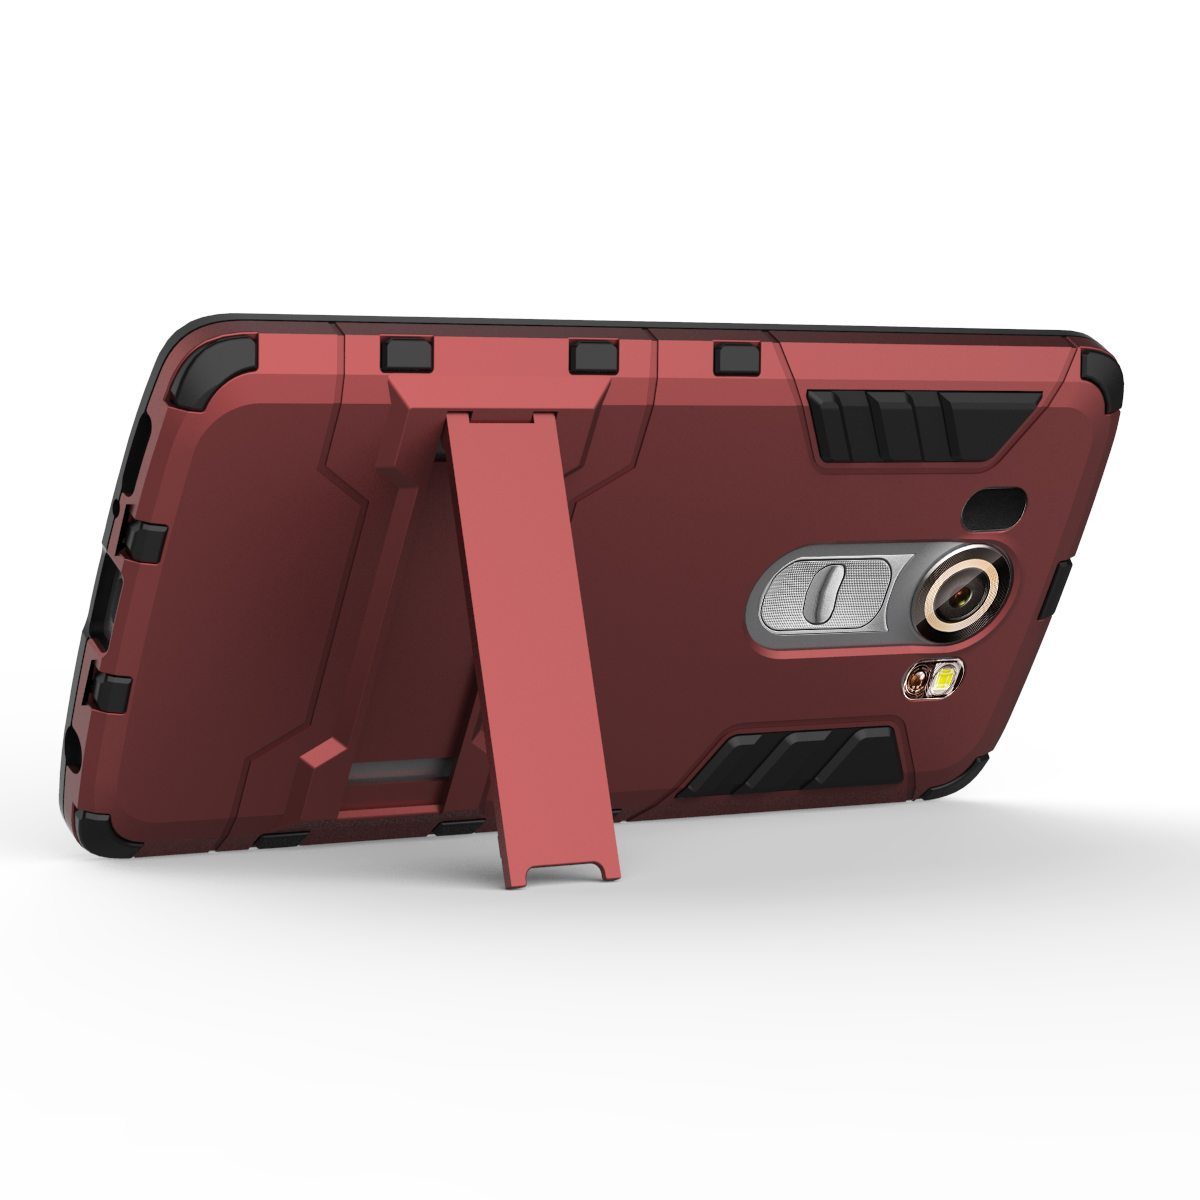 Shockproof Stand Hard Phone Cases for LG V10 F600 Case Rugged Holster Cover Protect Outdoor Phone Accessories Coque(China (Mainland))